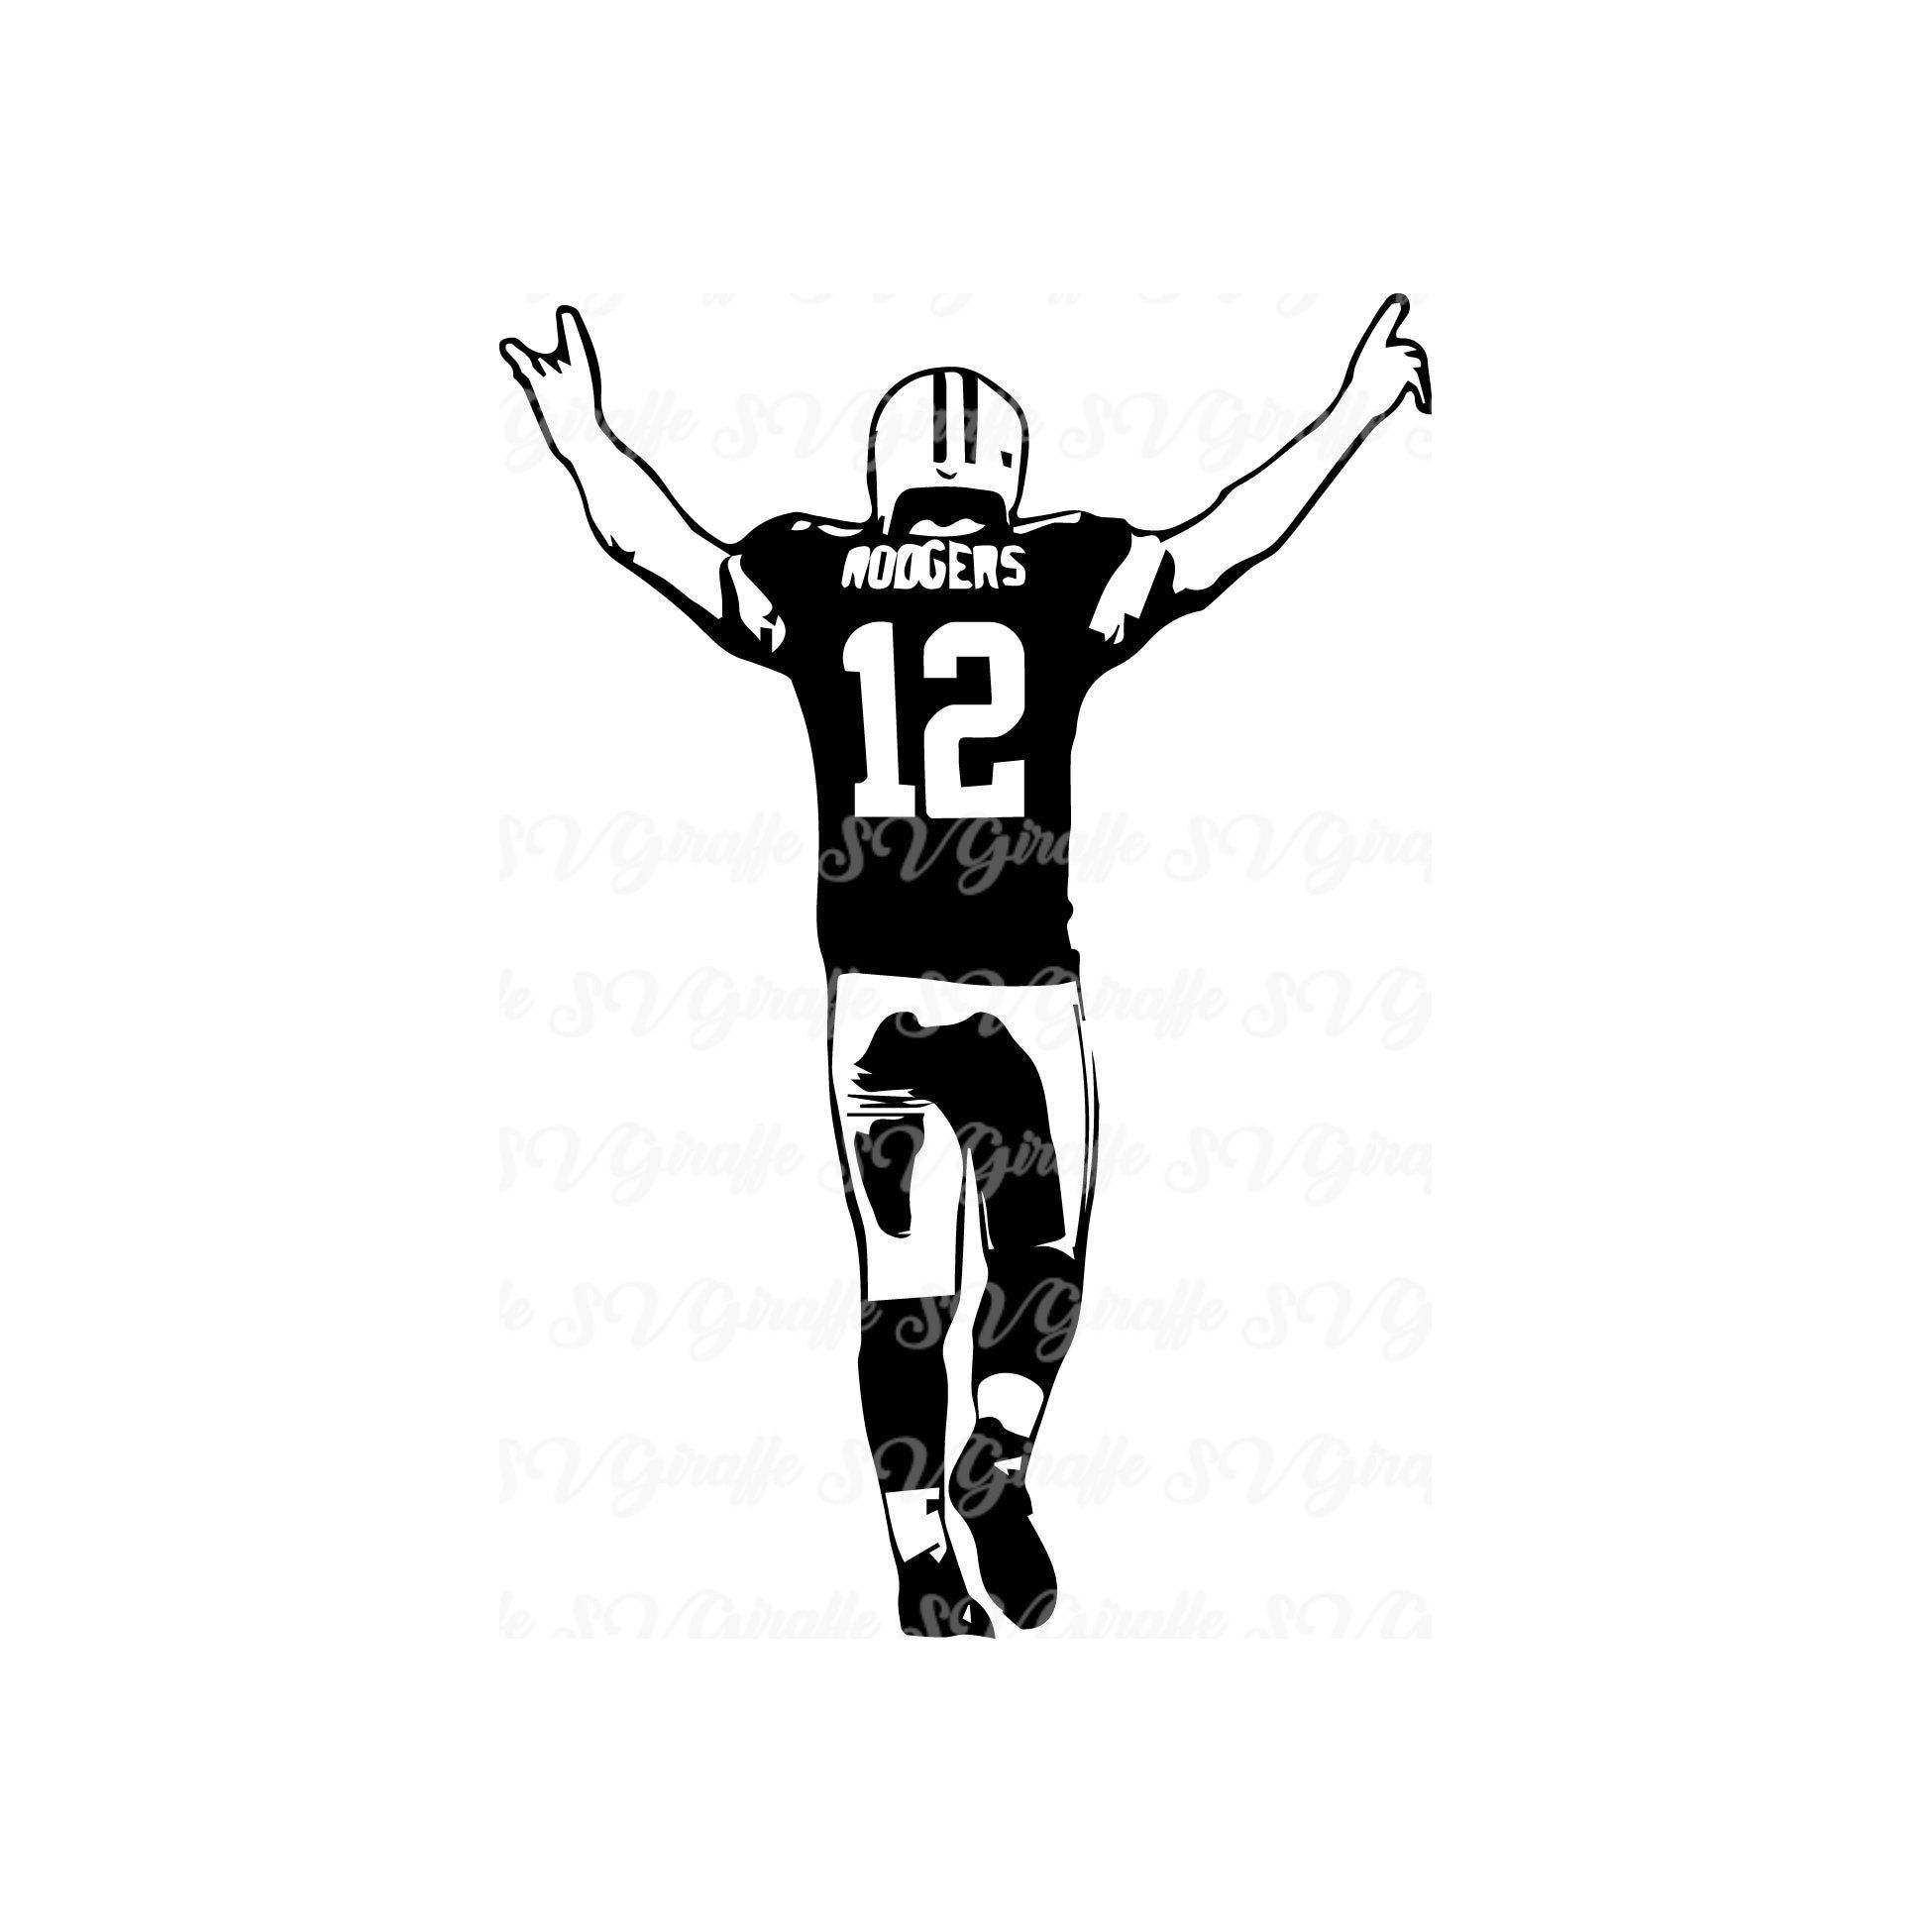 Aaron Rodgers Svg Dxf Png Pdf Jpg Files Aaron Rodgers Vector File Green Bay Packers Svg Dxf Pdf Png Jpg Cricut Pack Aaron Rodgers Green Bay Packers Svg